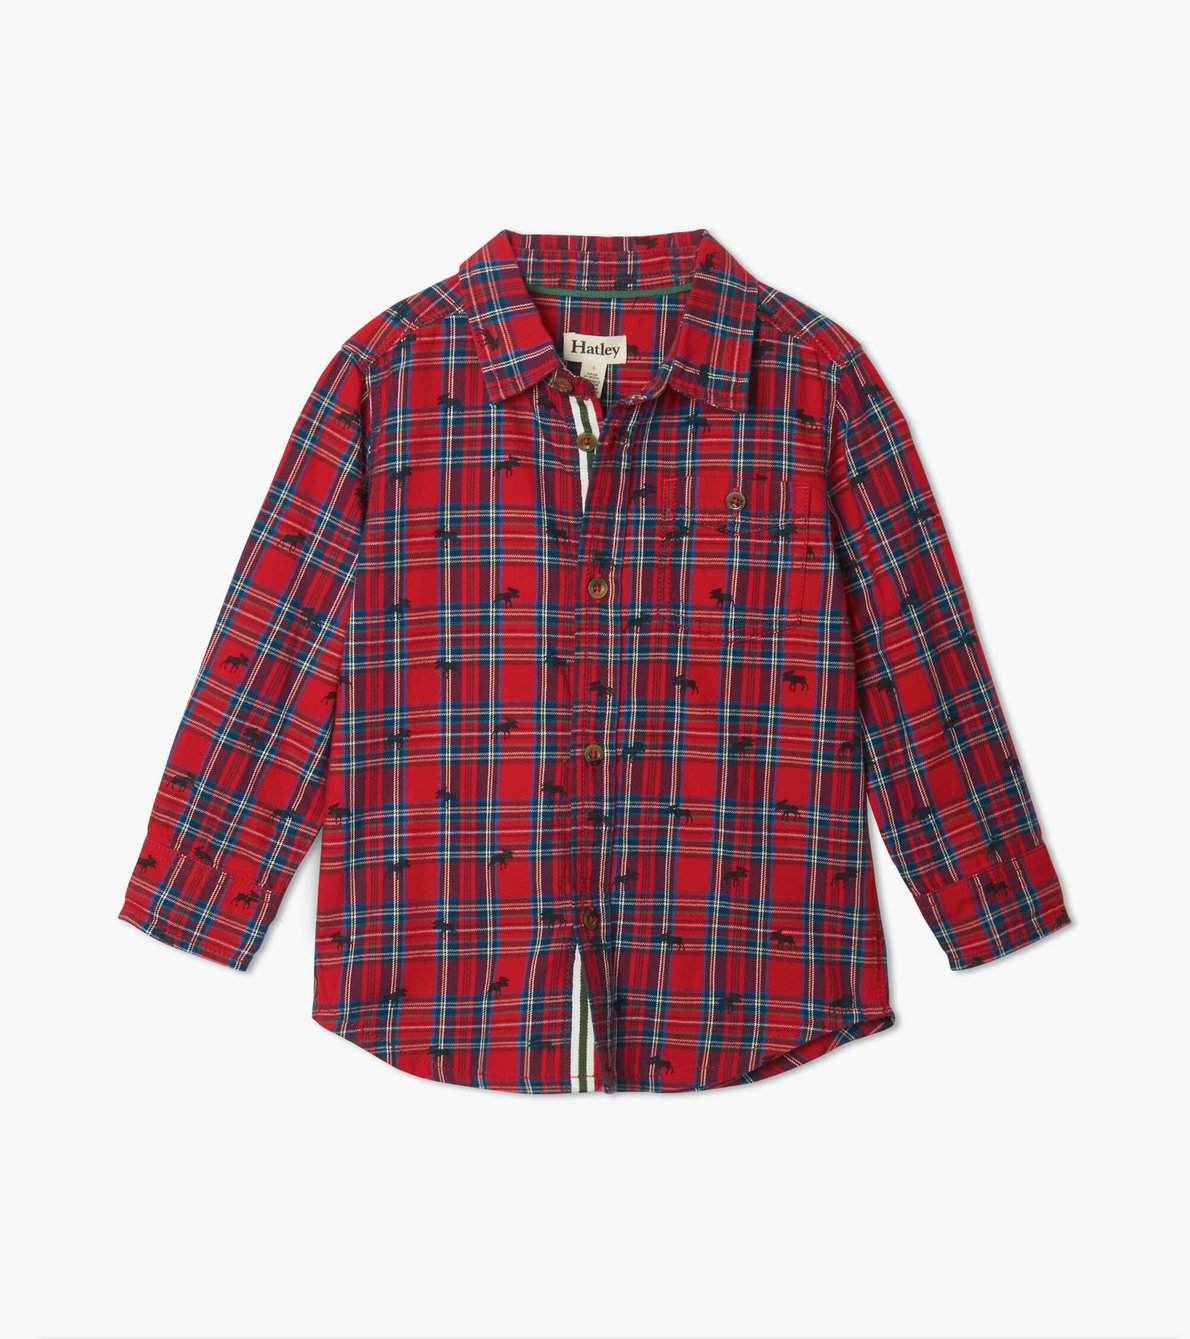 View larger image of Holiday Plaid Moose Button Down Shirt